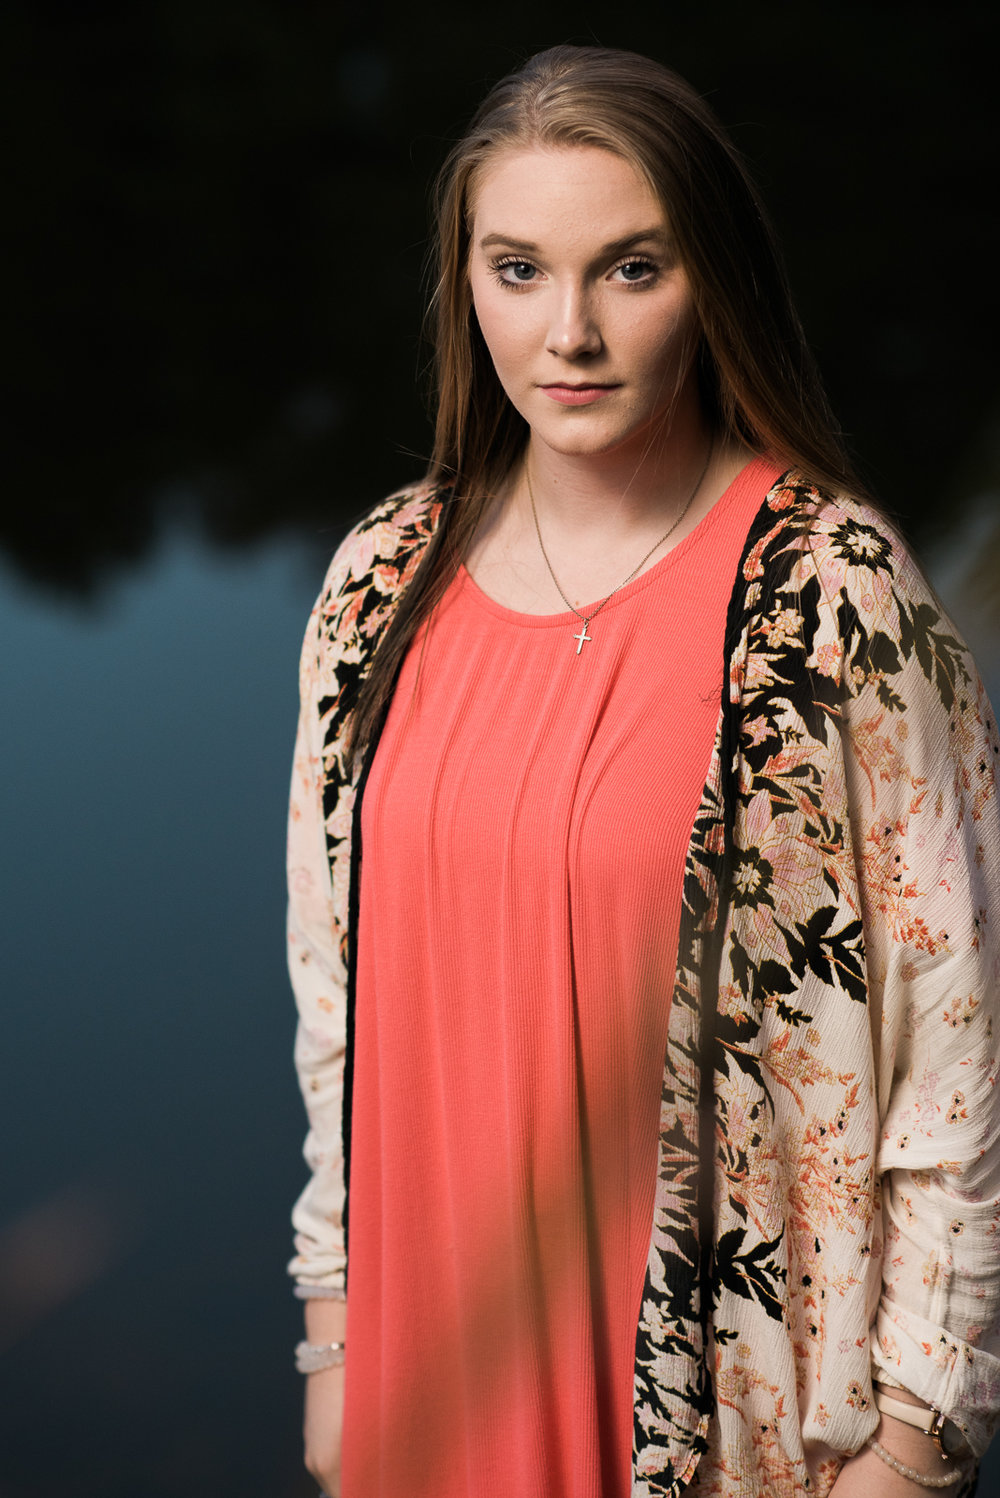 Ashlynn-Sumrall-MS-Senior-Photos-15.jpg